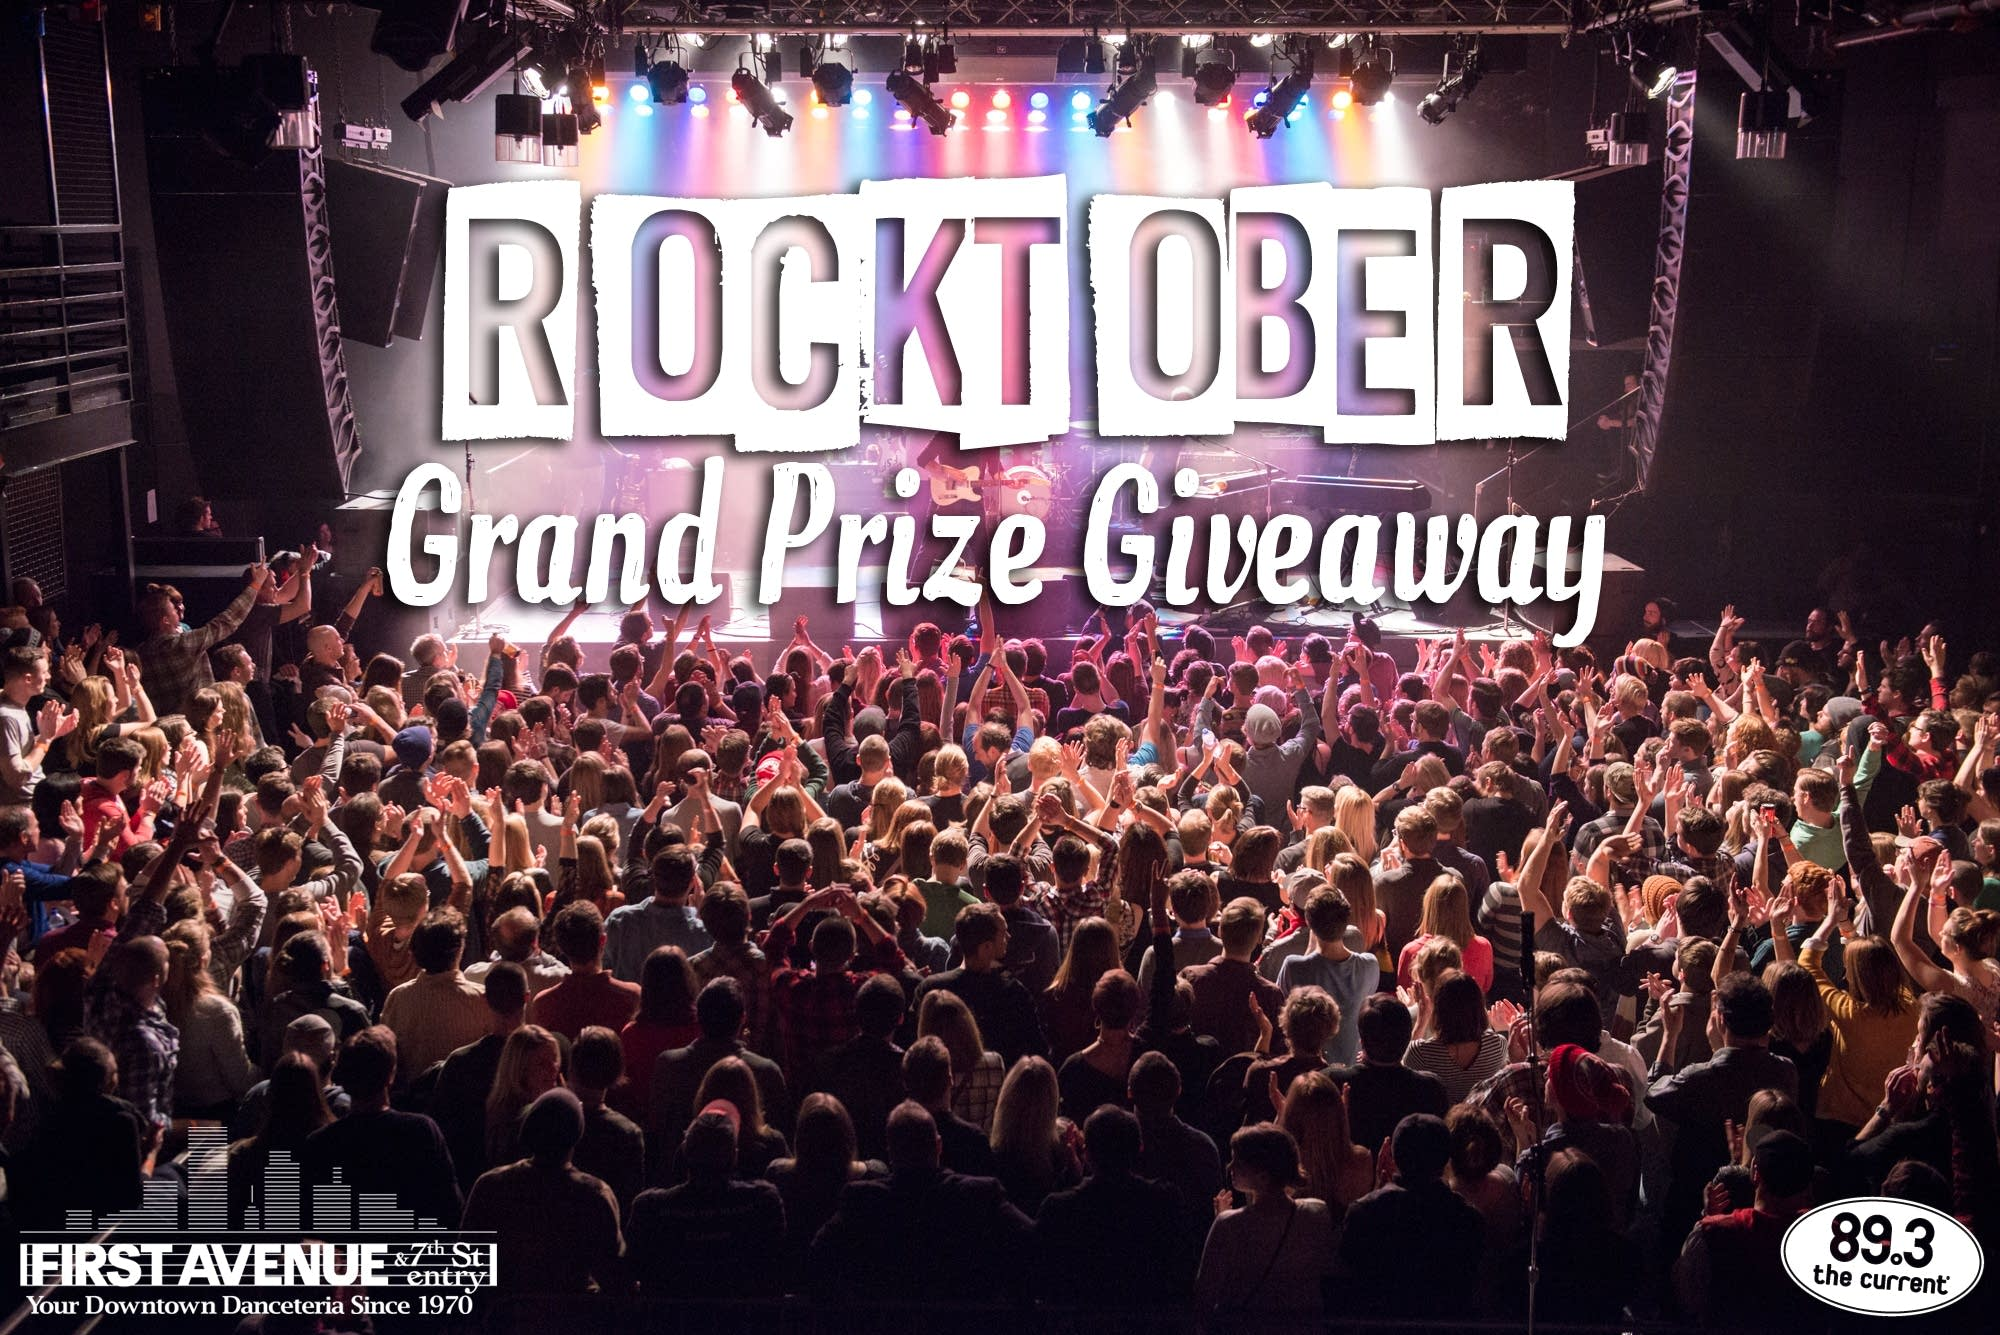 Enter The Current's First Avenue Rocktober Grand Prize Giveaway ...